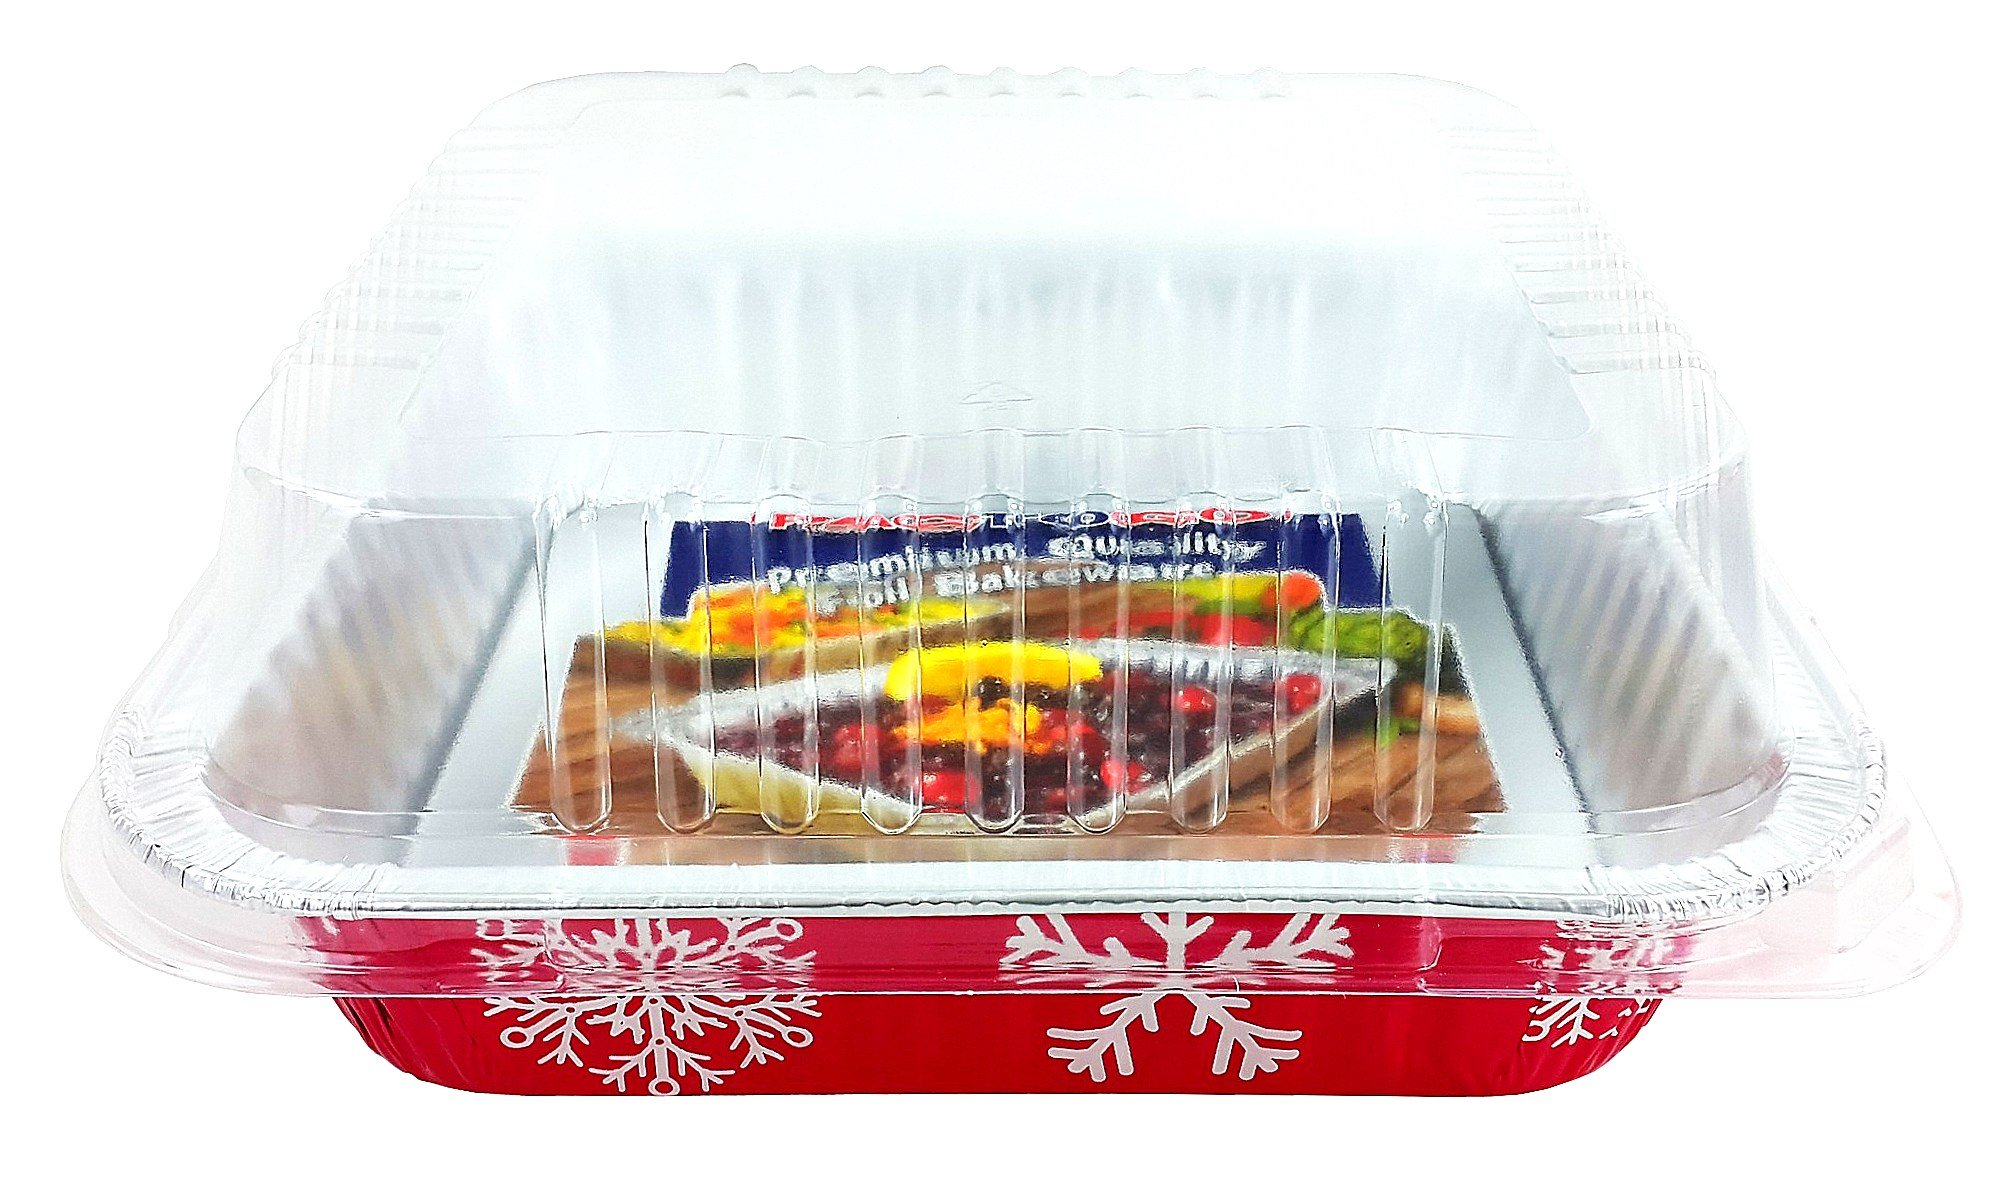 Pactogo Red Holiday Christmas Square Cake Aluminum Foil Pan w/Clear Dome Lid Disposable Baking Tins (Pack of 25 Sets) by PACTOGO (Image #5)